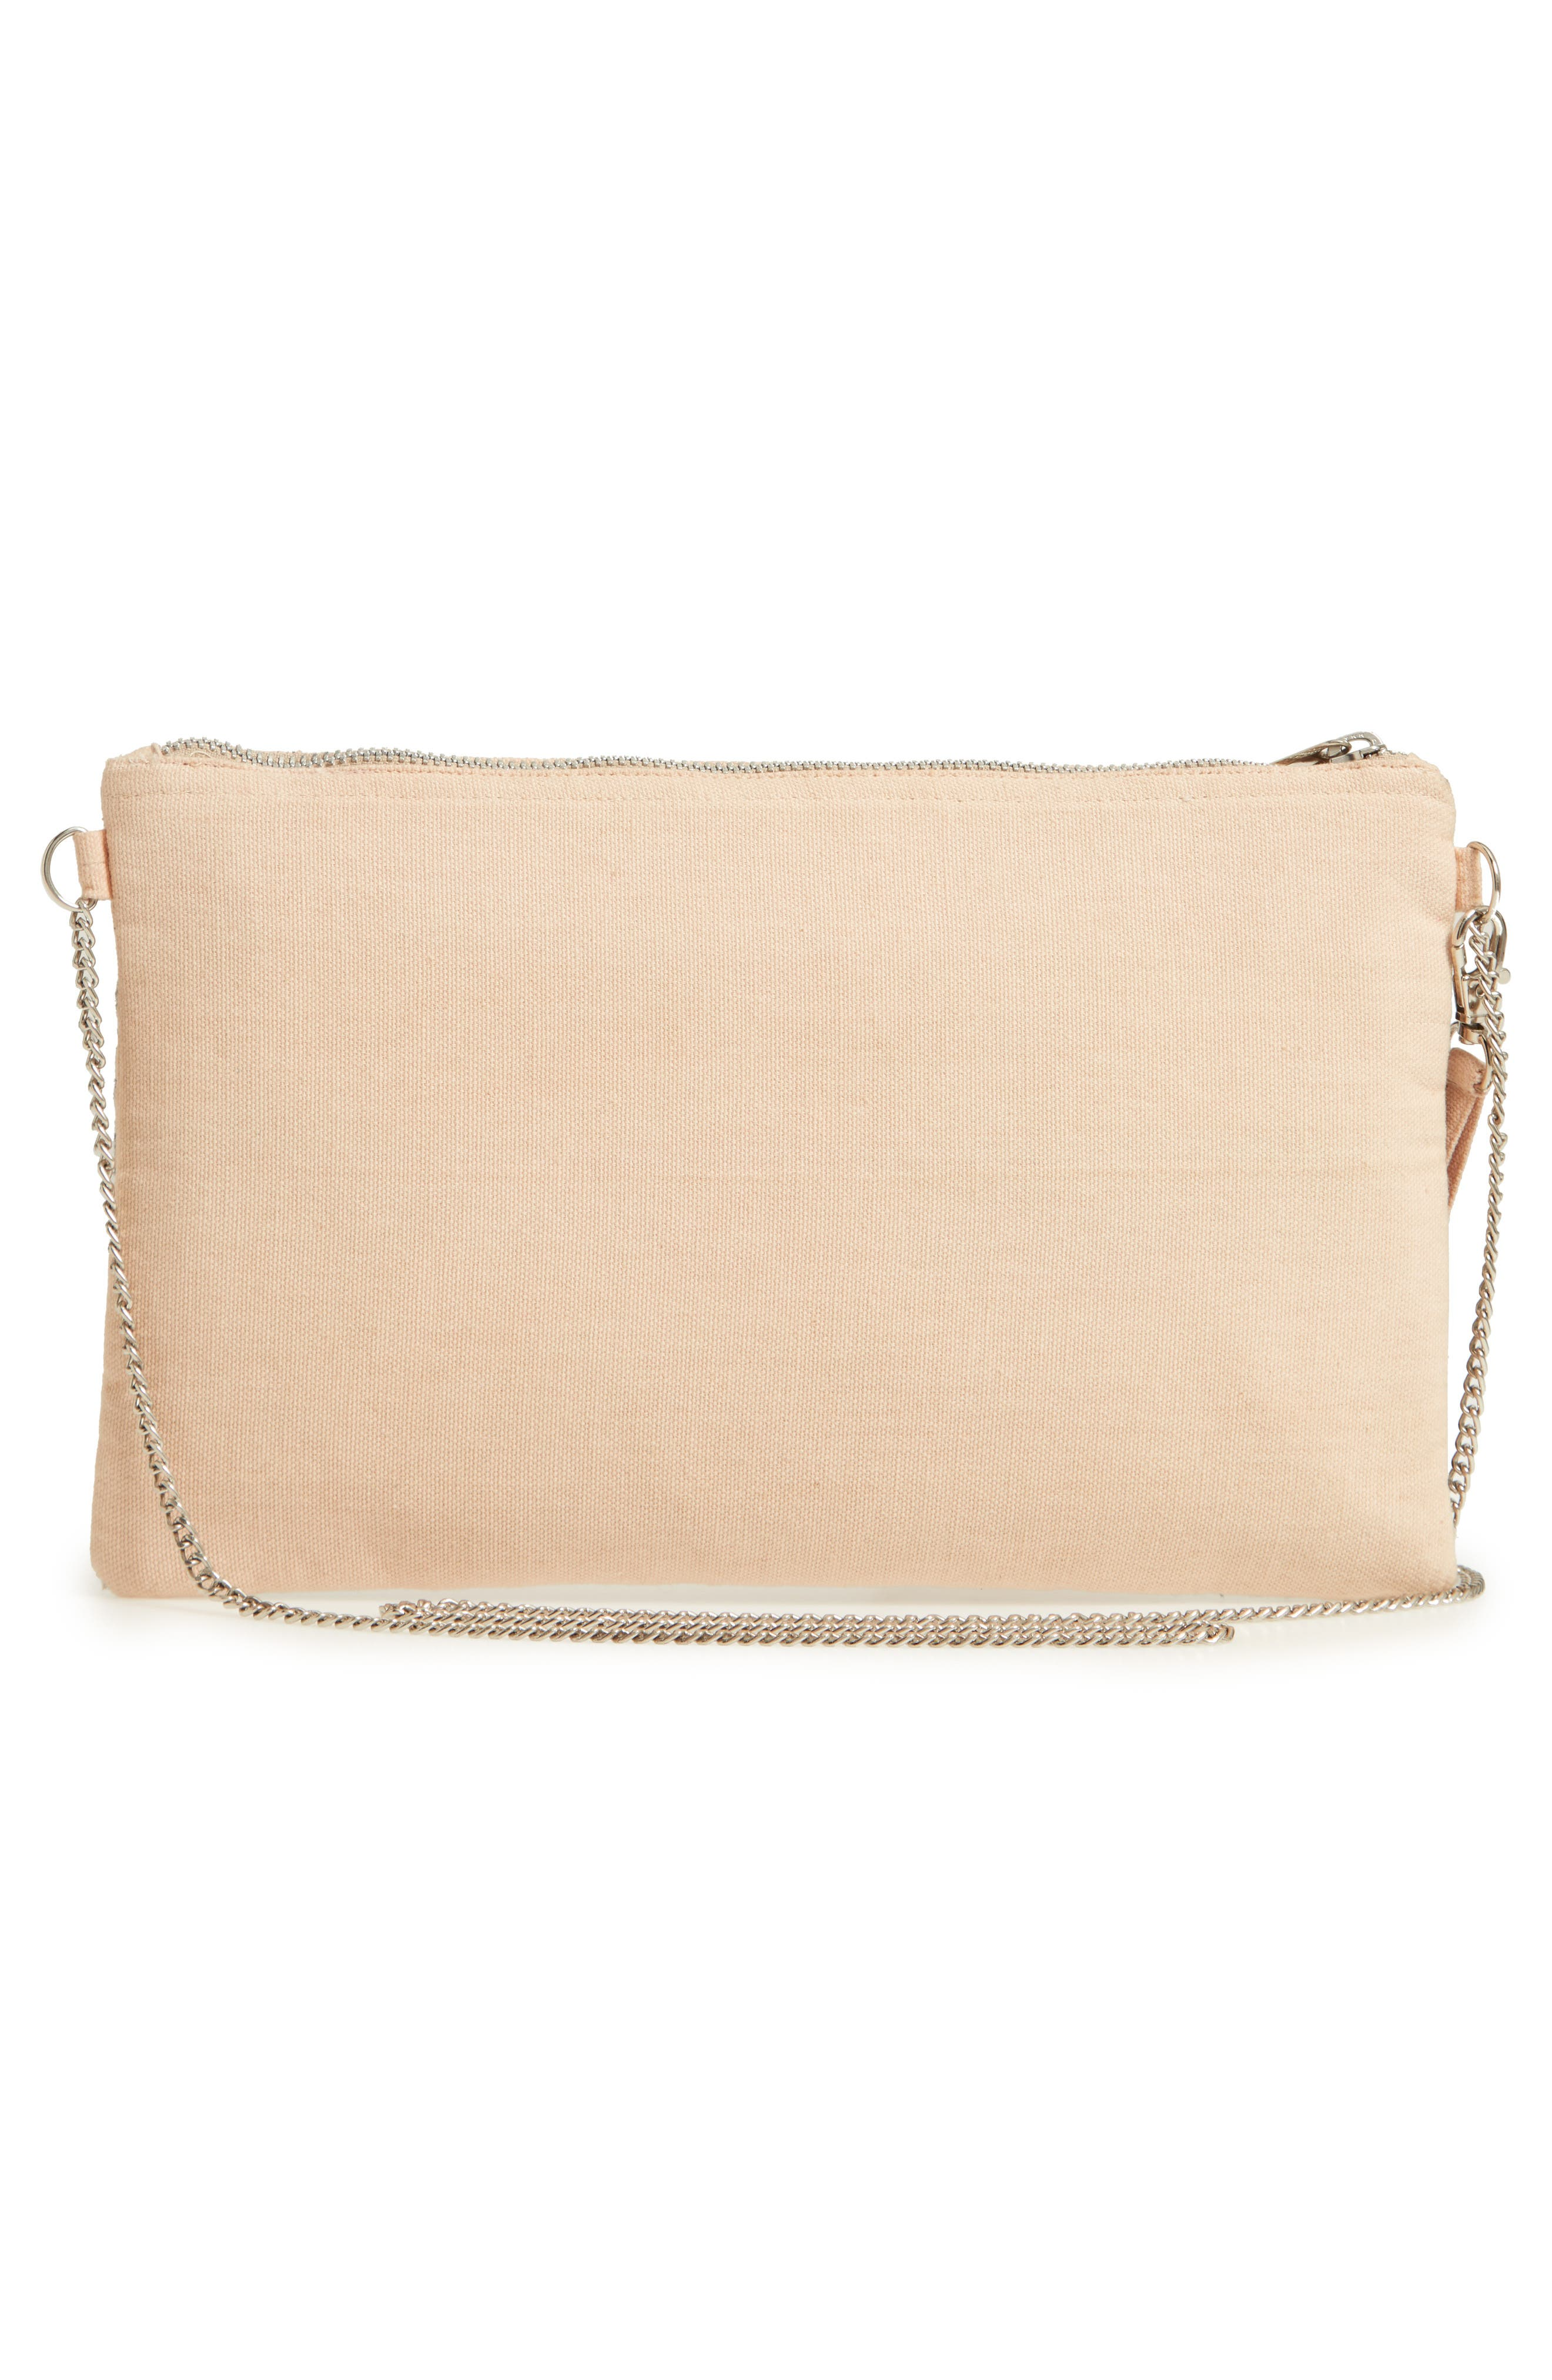 Embroidered Zip Clutch,                             Alternate thumbnail 3, color,                             Pink Multi